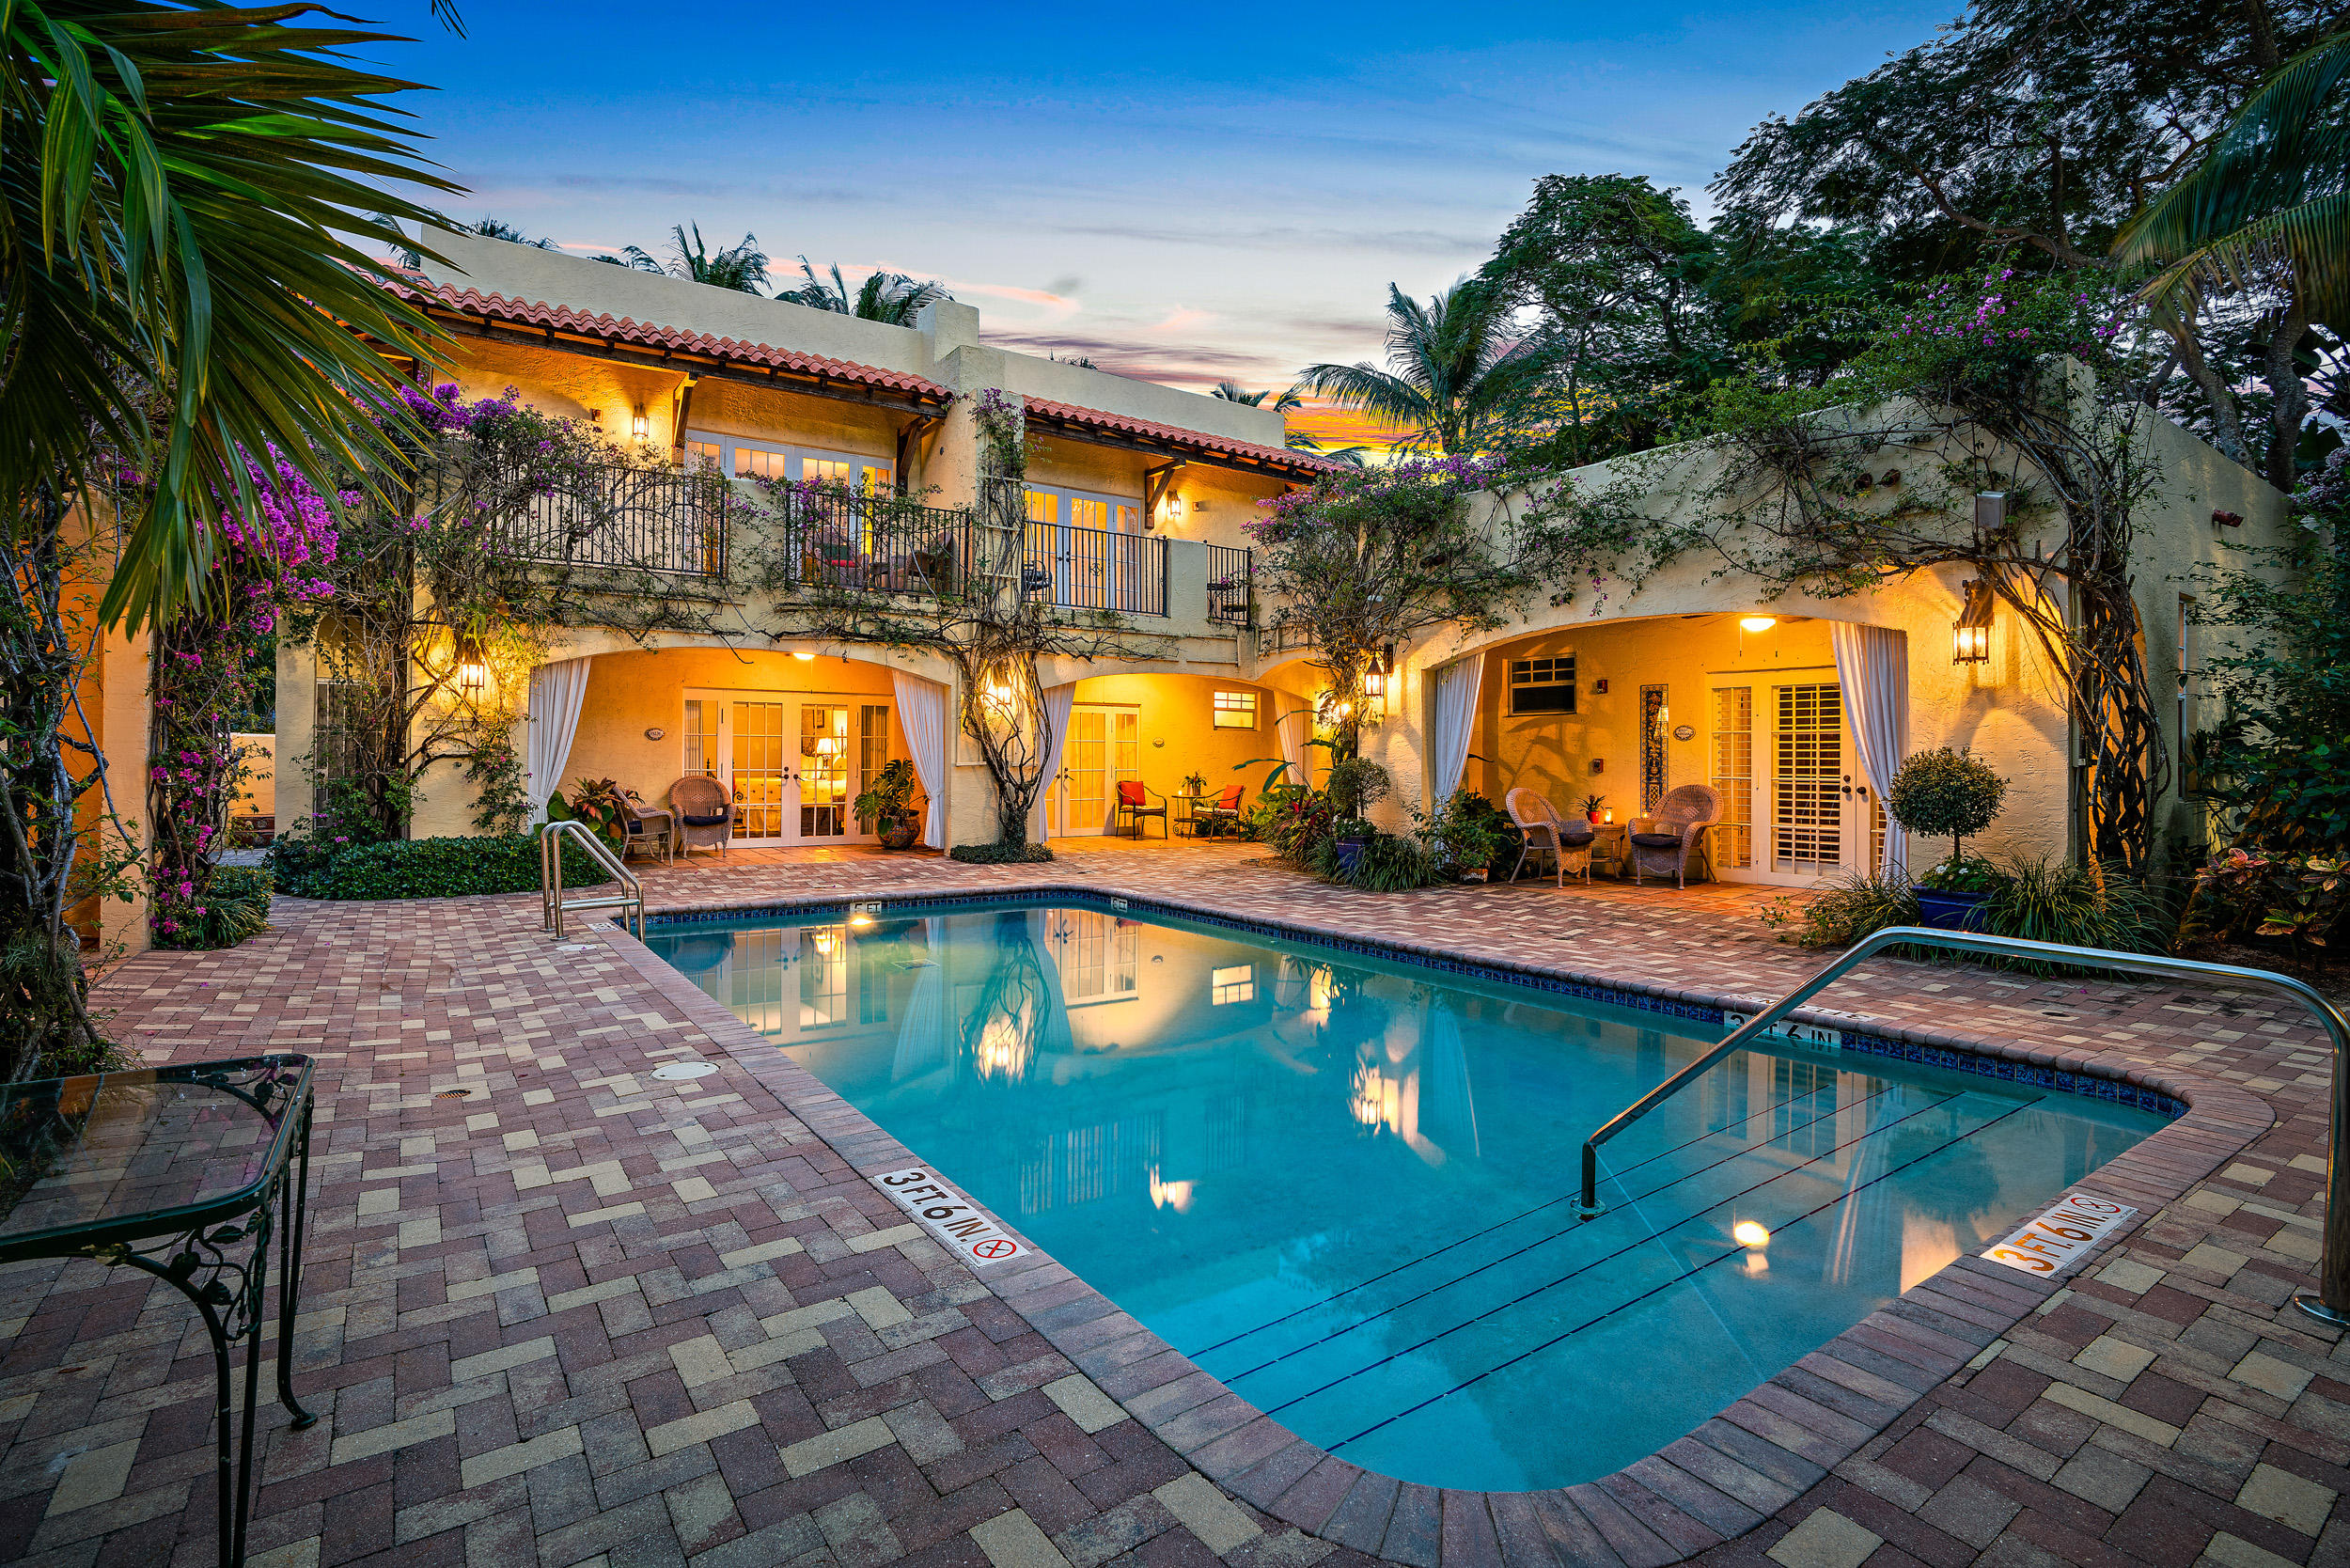 1608 Lake Avenue, West Palm Beach, Florida 33401, 10 Bedrooms Bedrooms, ,9.1 BathroomsBathrooms,Single Family,For Sale,Grandview Heights,Lake,RX-10508878